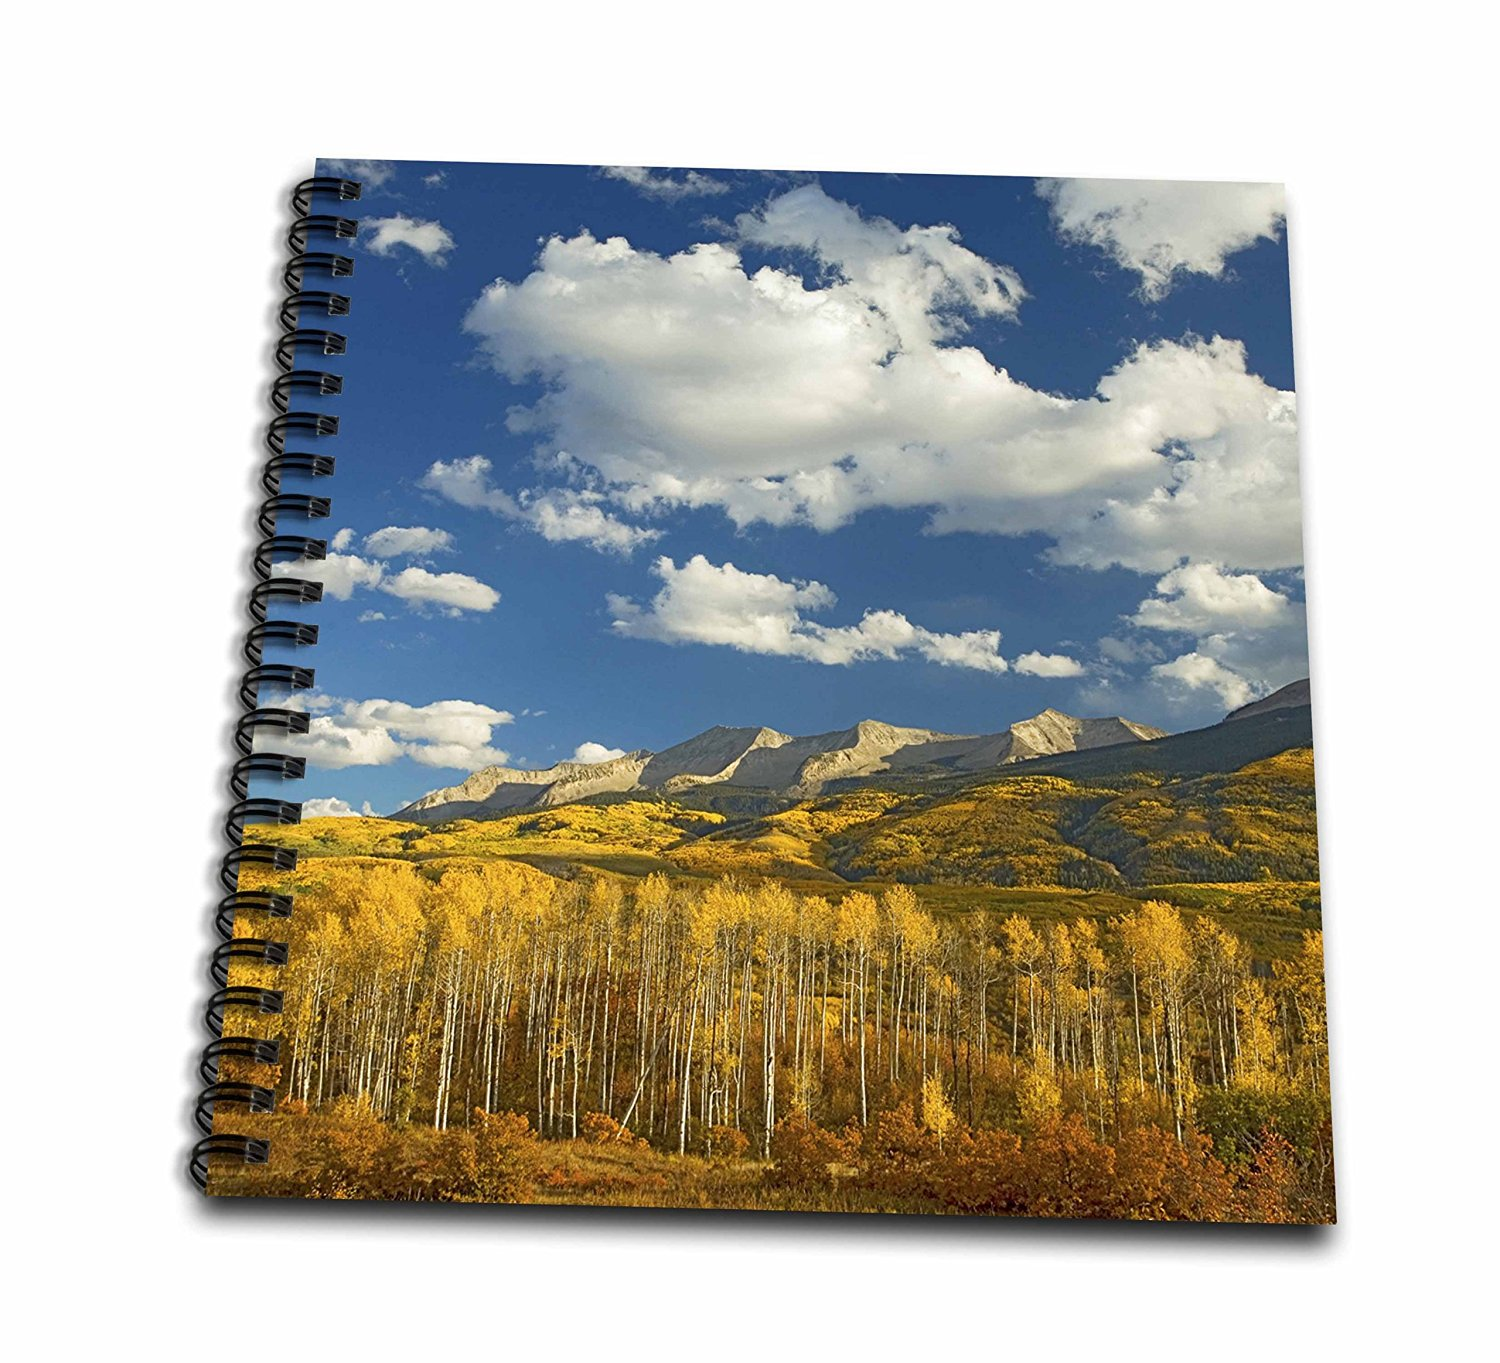 Danita Delimont - Charles Gurche - Forests - USA, Colorado, Gunnison National Forest. - Memory Book 12 x 12 inch (db_189746_2)